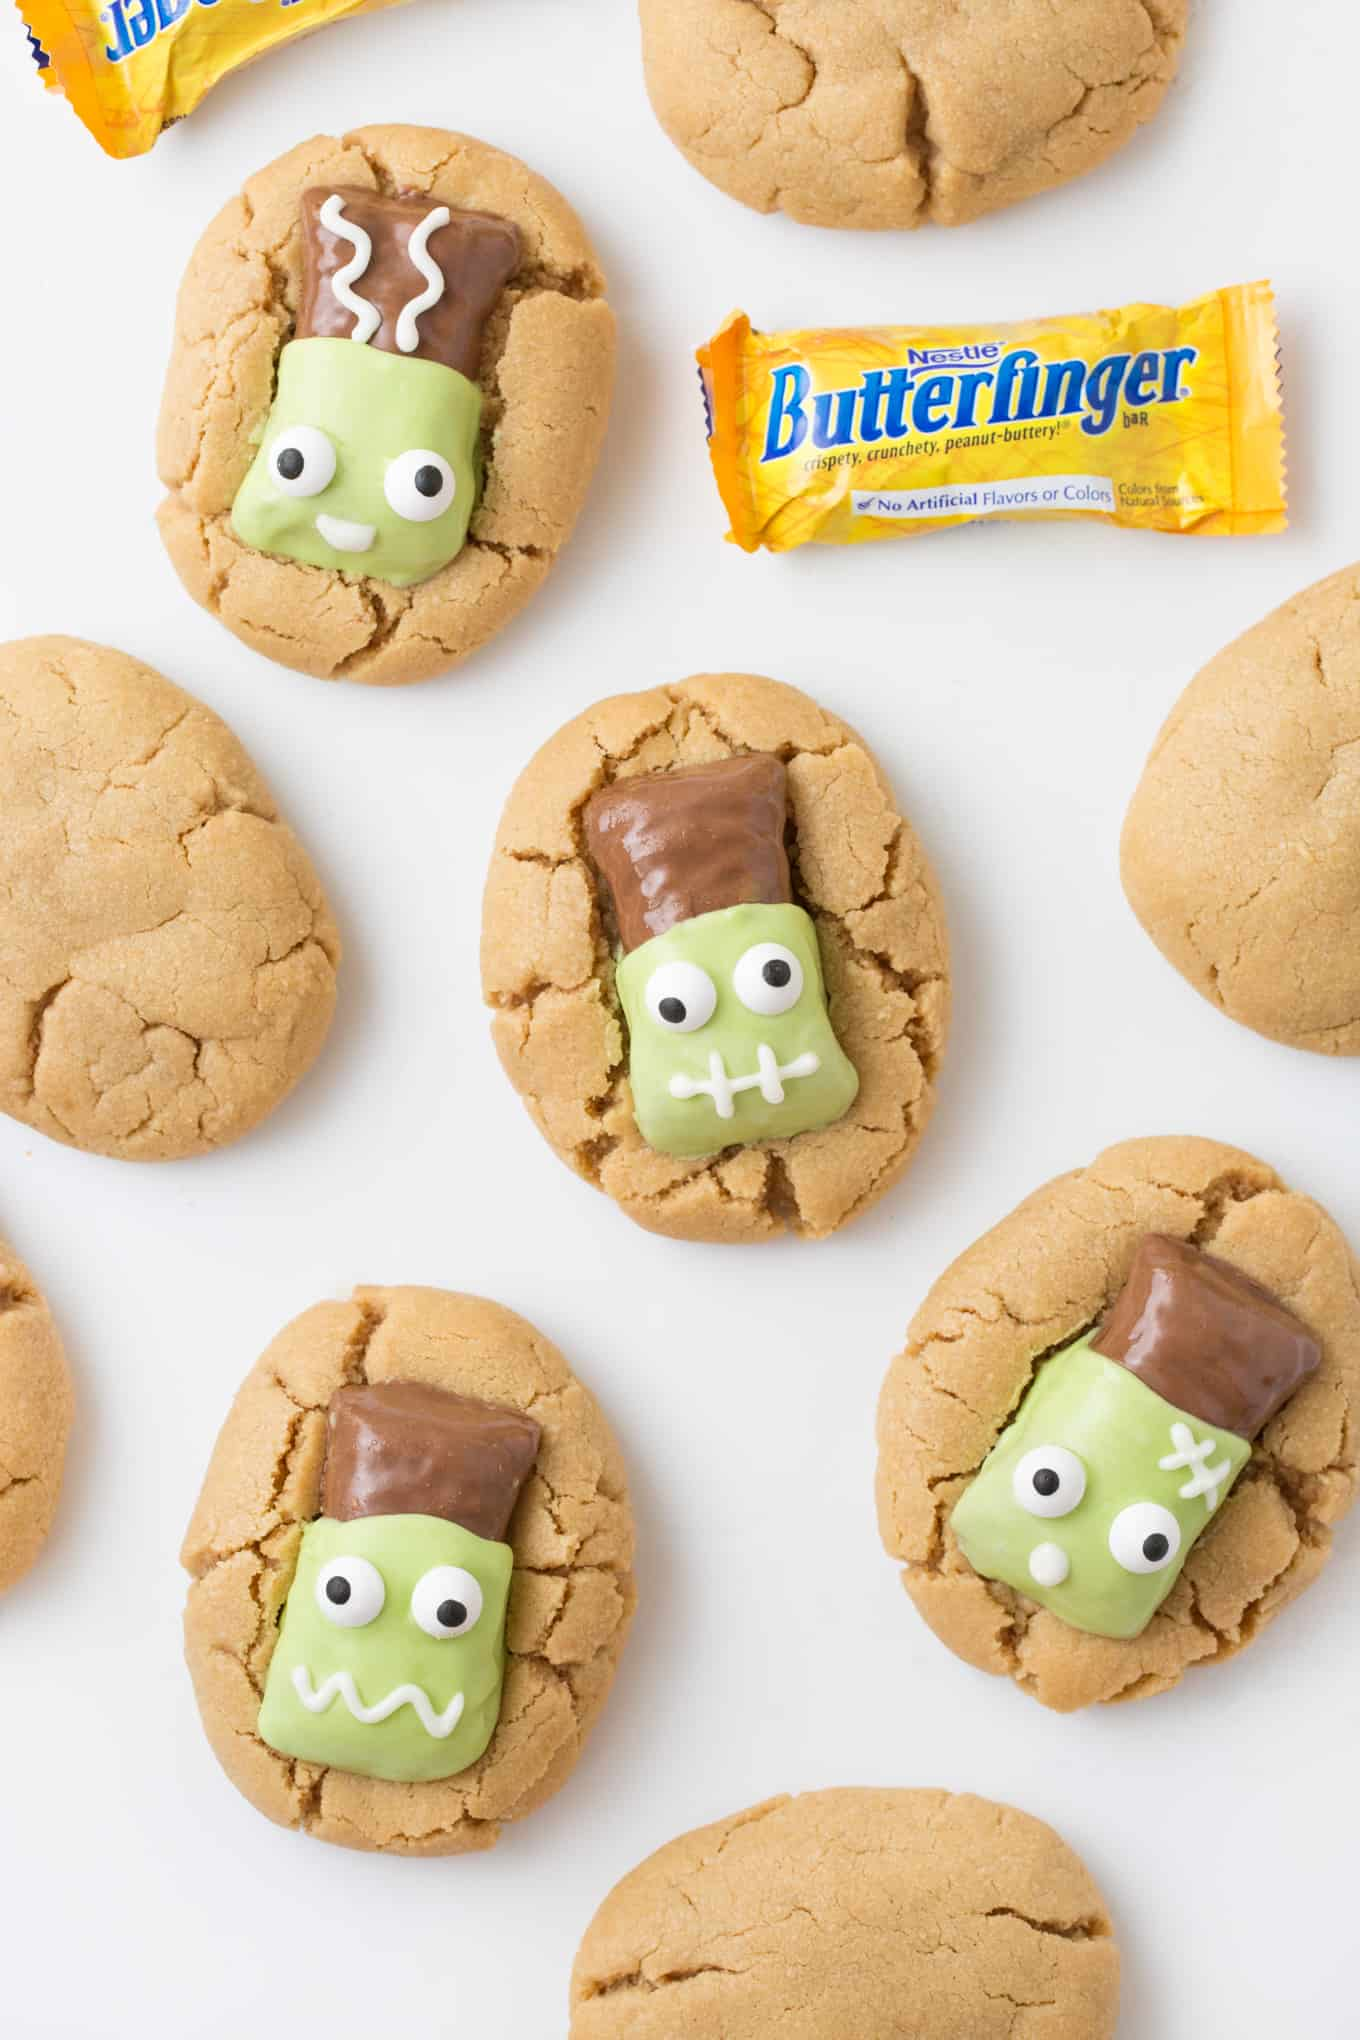 How fun are these Frankenstein cookies? Simply dip Butterfinger Fun Size Candy Bars into melted almond bark to turn normal peanut butter cookies into adorable Frankenstein cookies! A perfect Halloween treat idea to make with the kids for parties, class treats, or more! #Halloween #HalloweenCookies #Butterfinger | www.DesignEatRepeat.com